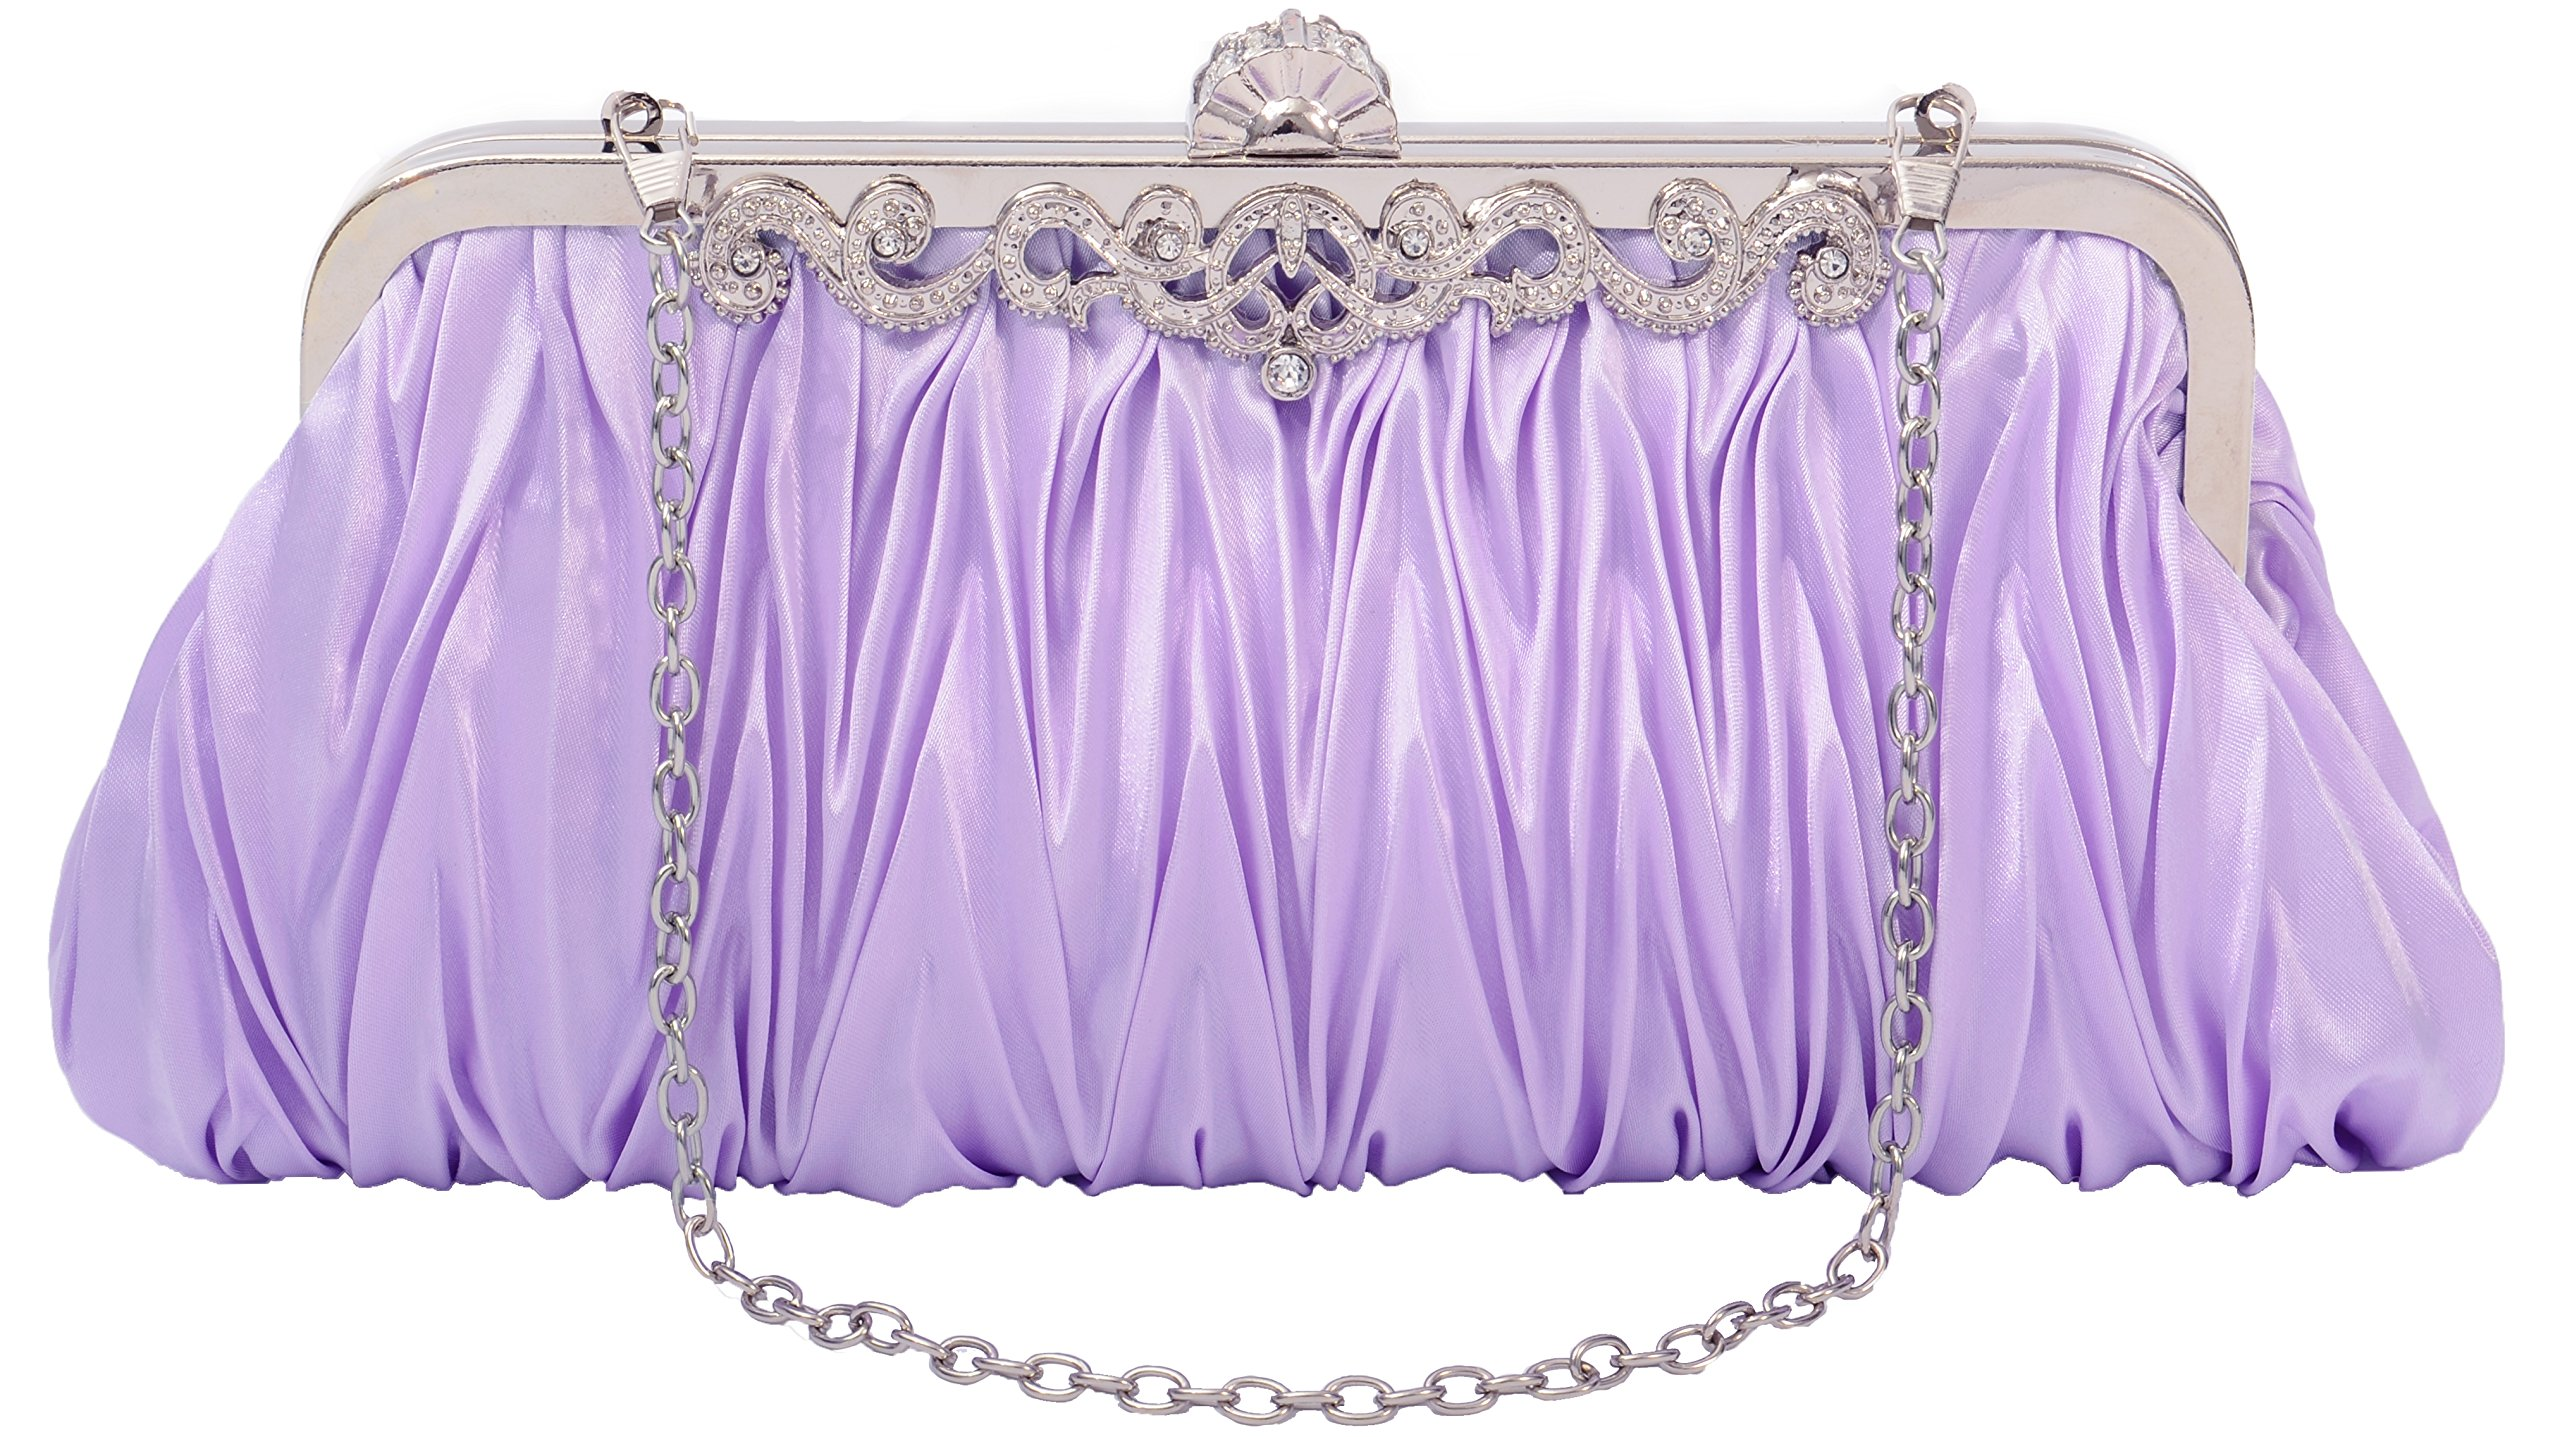 Pulama Gorgeous Shoulder Bag Clutch Fit New York Formal Party Prom Evening Dress, Lilac